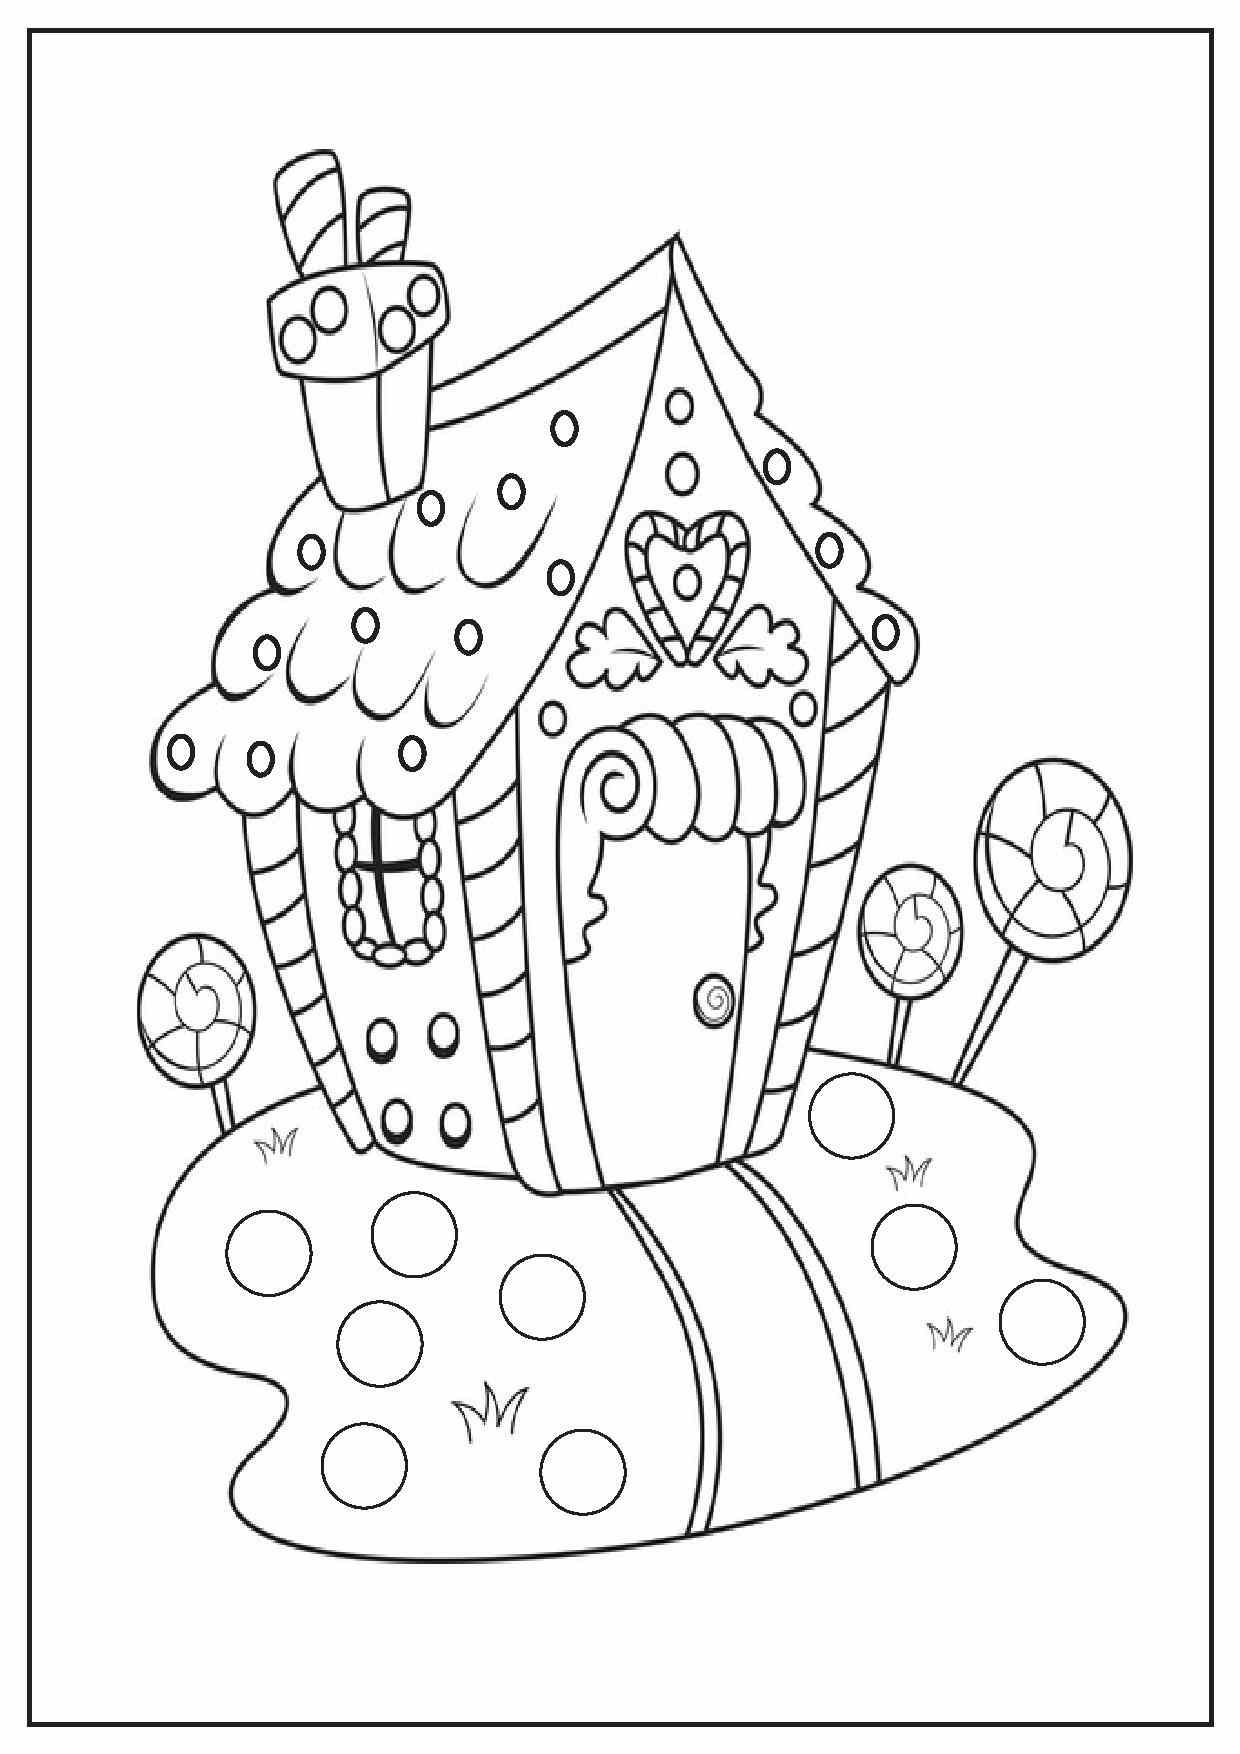 Christmas Images Coloring Pages With Printable